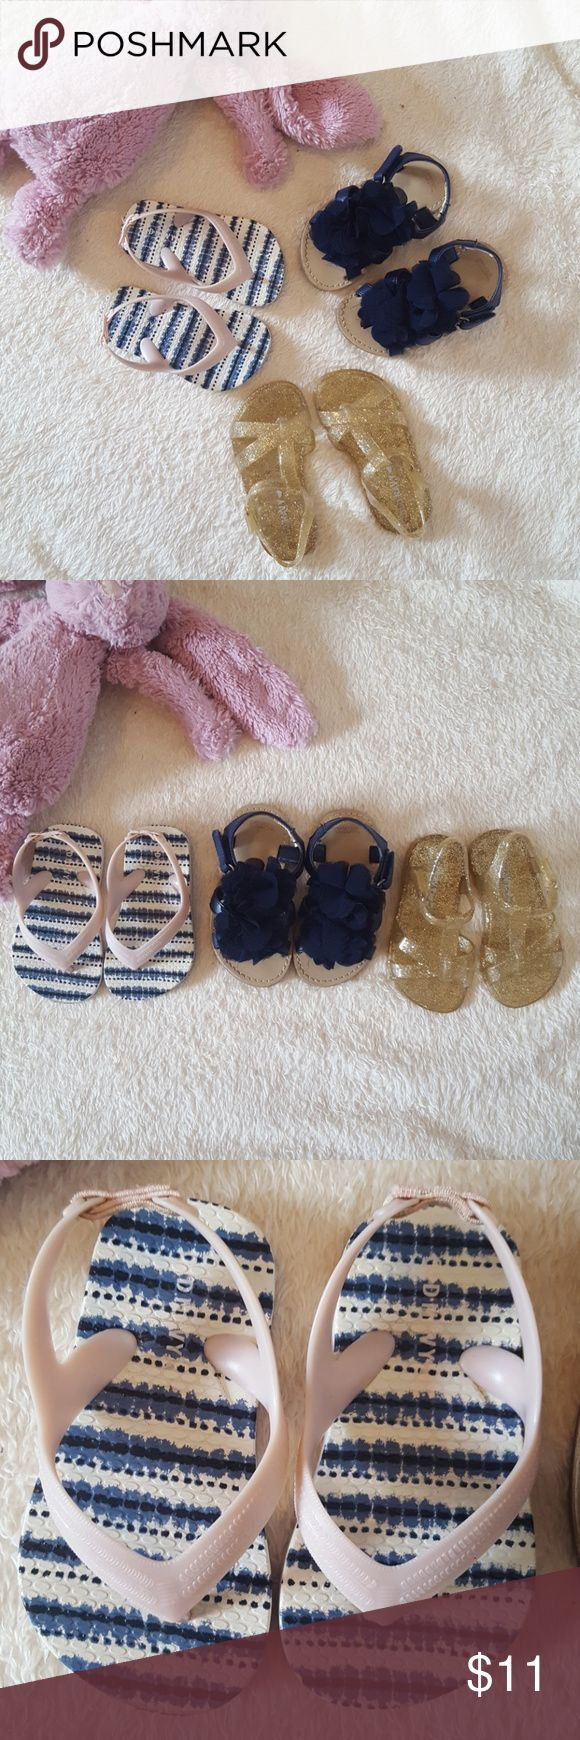 Bundle Toddler Girls Sandals 1 pair Old Navy Flip Flop sz 5 1 pair Gymboree ruffle sandals sz 5 1 pair Old Navy jelly glitter sandals sz 5  All preowned but hardly worn. LOTS of life left. Sold as bundle Only. Must go!! Gymboree Shoes Sandals & Flip Flops